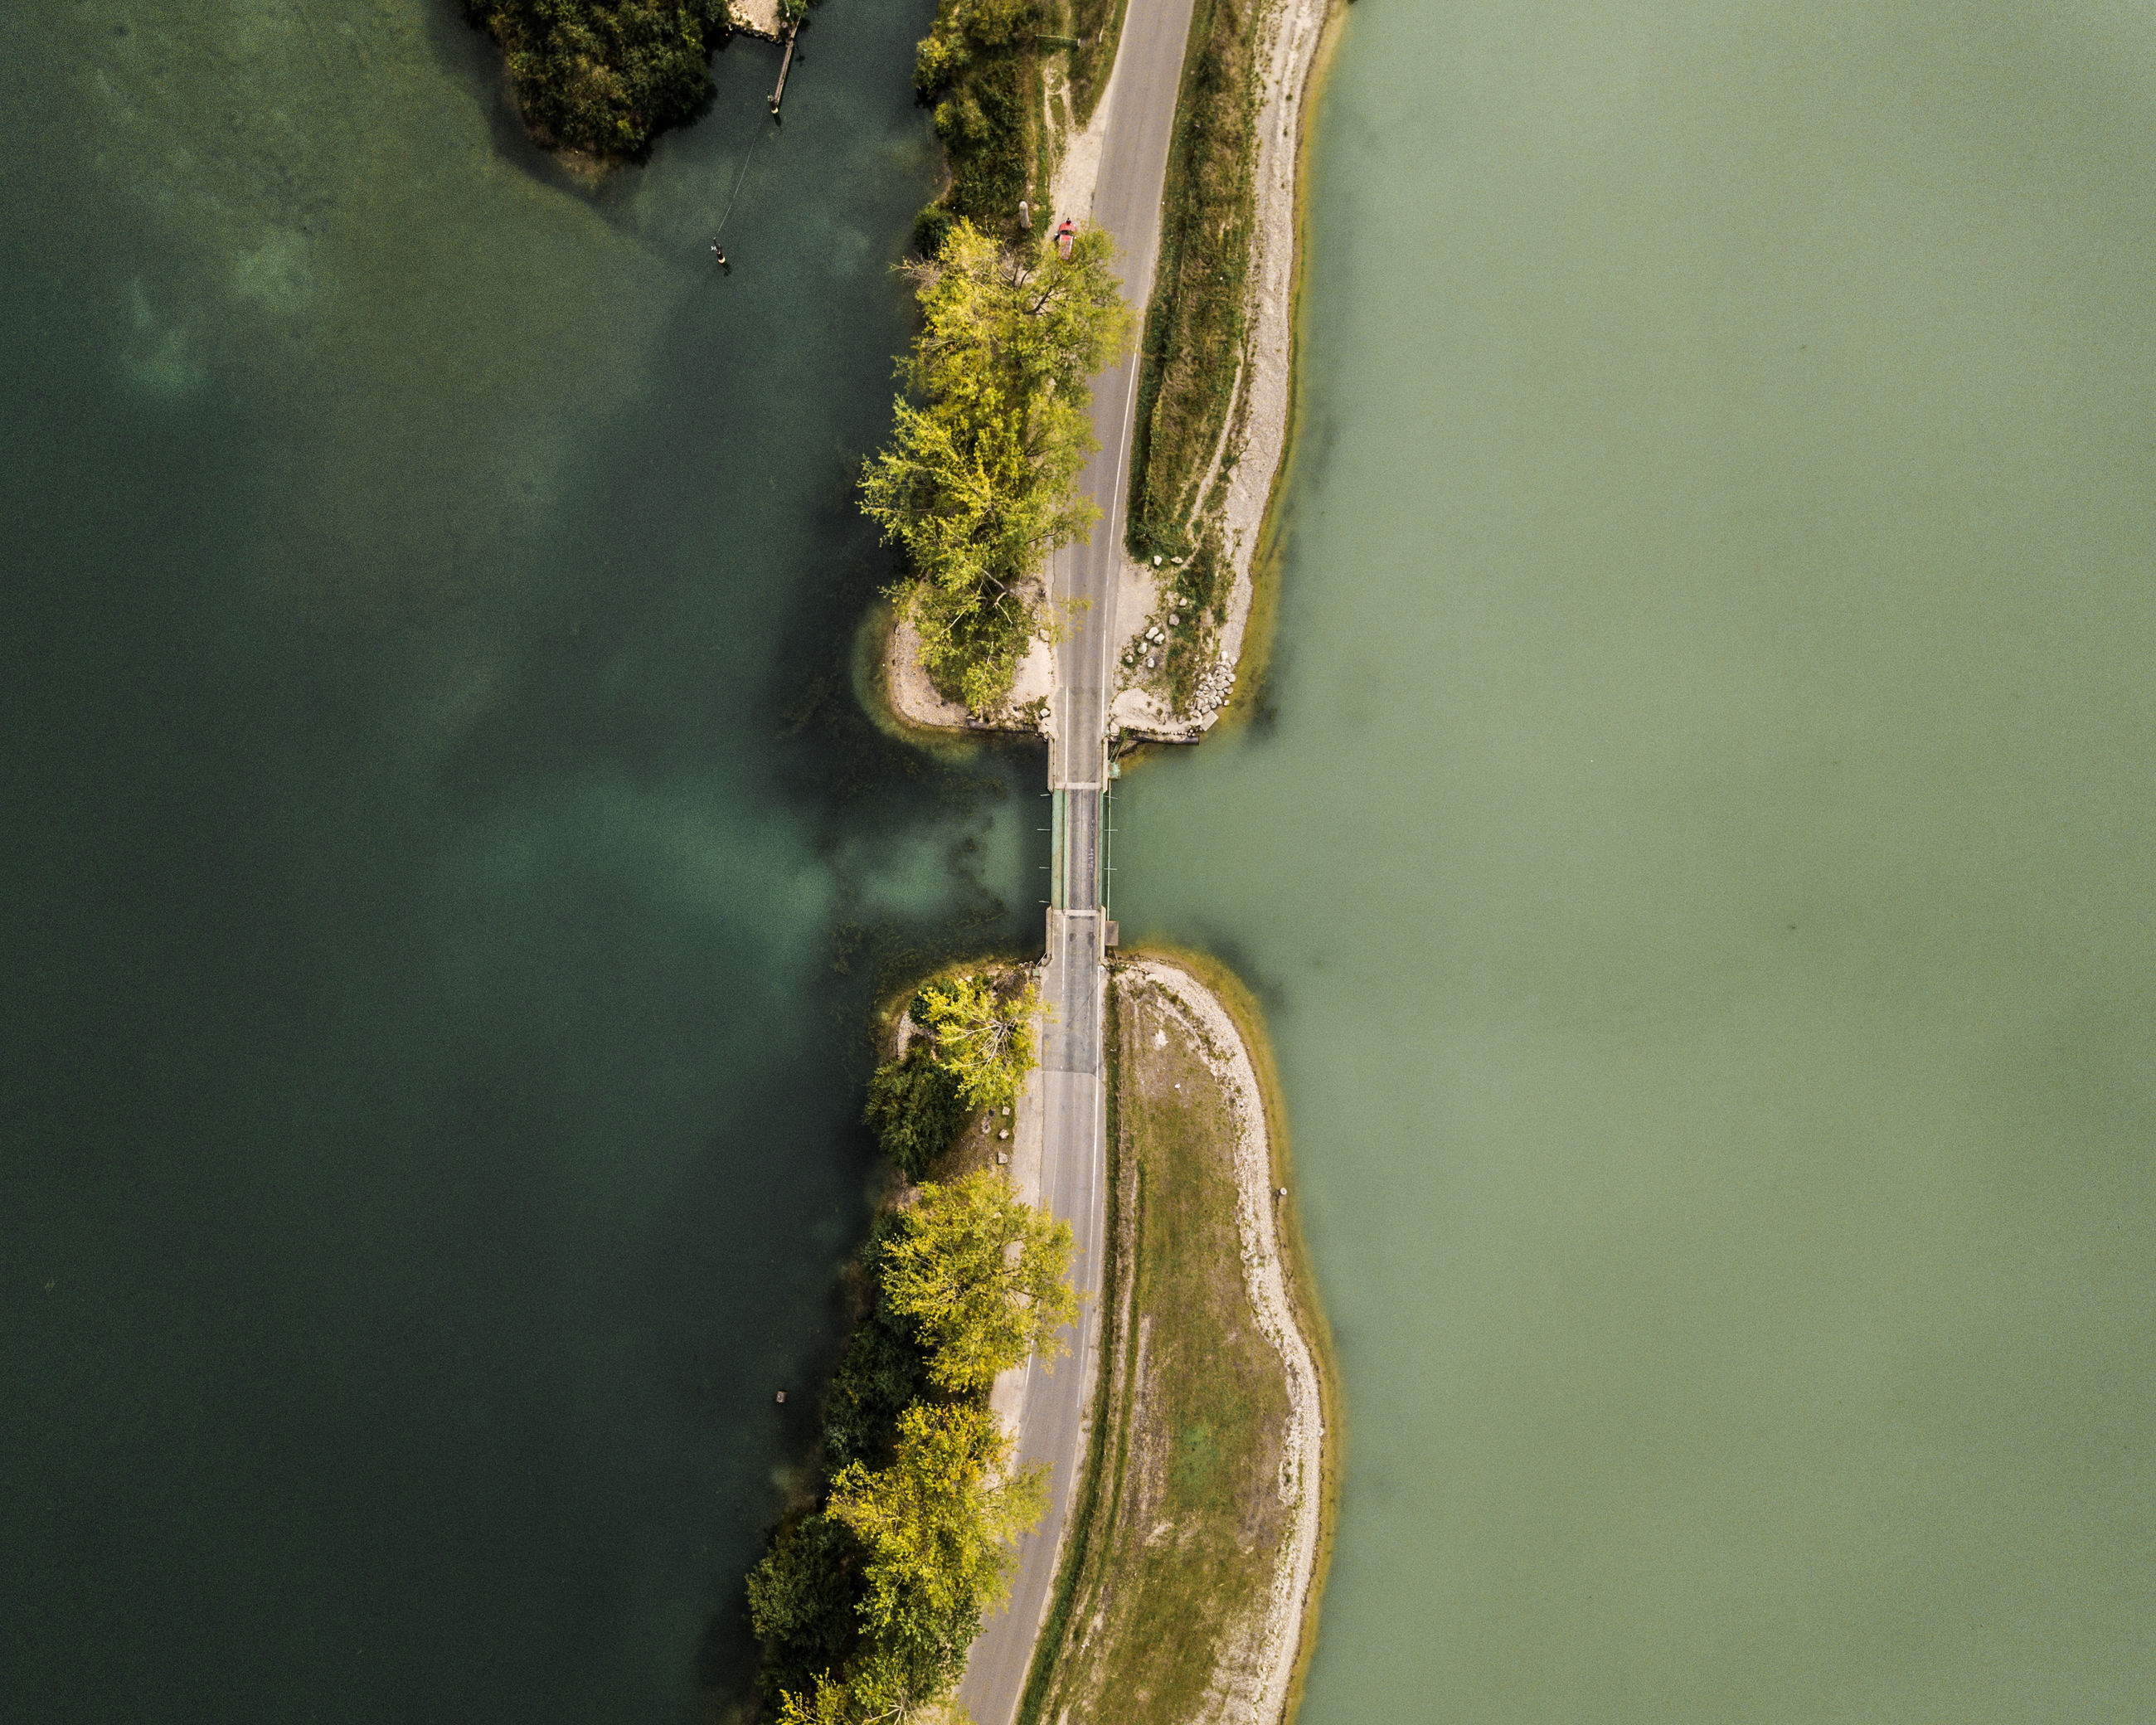 no people, water, high angle view, nature, day, green color, scenics - nature, transportation, beauty in nature, plant, aerial view, tree, outdoors, river, motion, mode of transportation, non-urban scene, directly above, waterfront